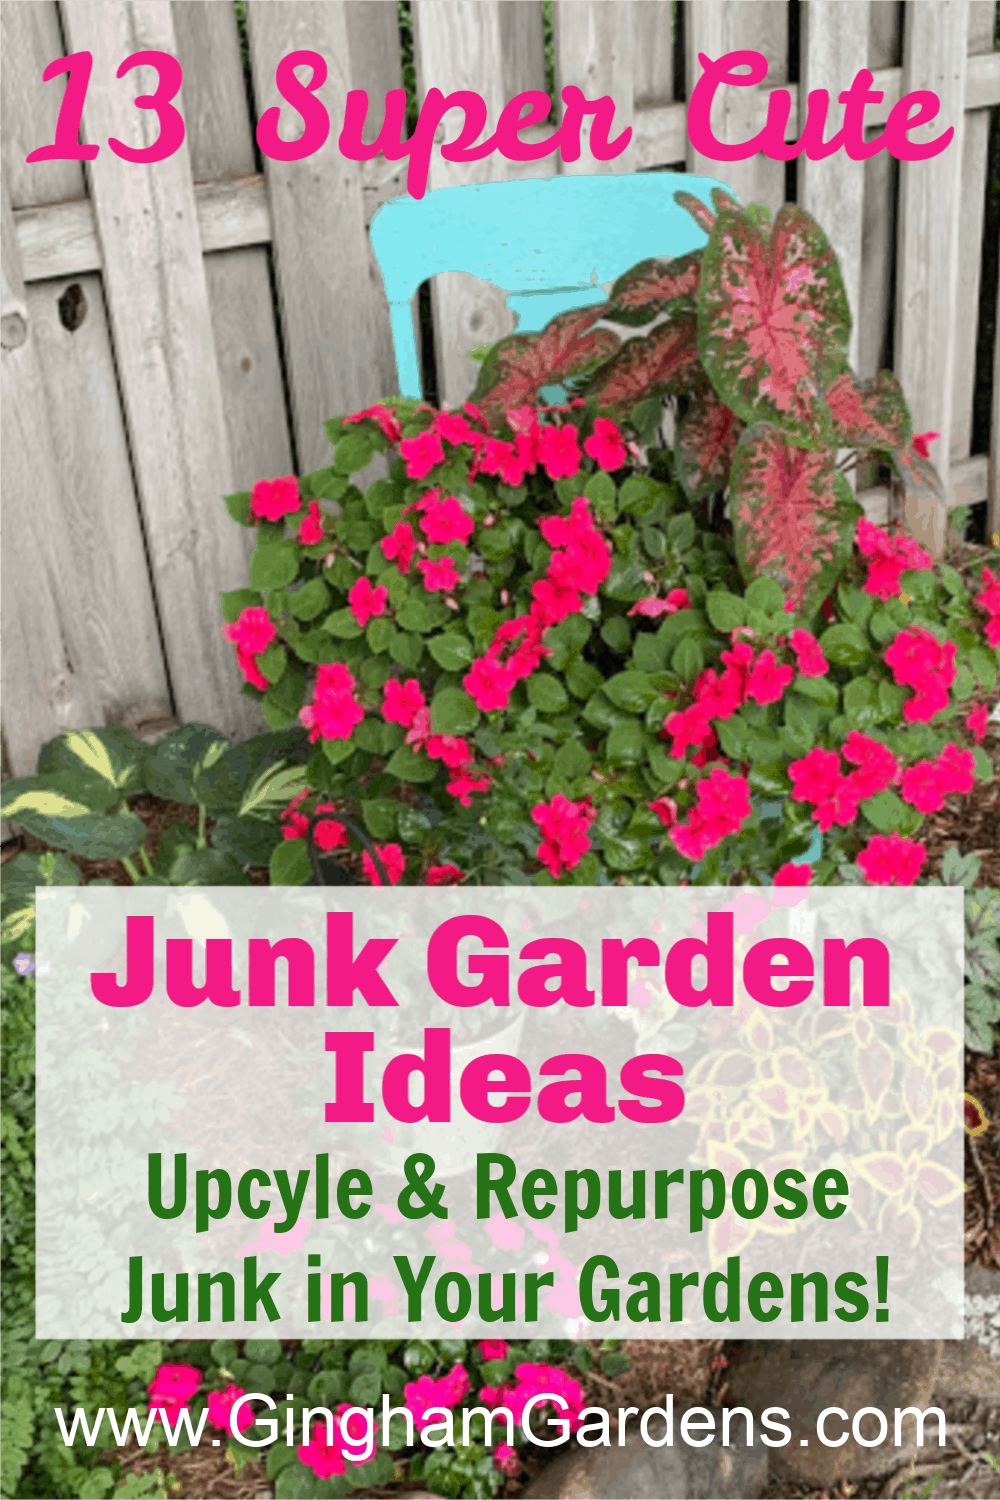 Image of old chair used as a flower planter with text overlay - Junk Garden Ideas